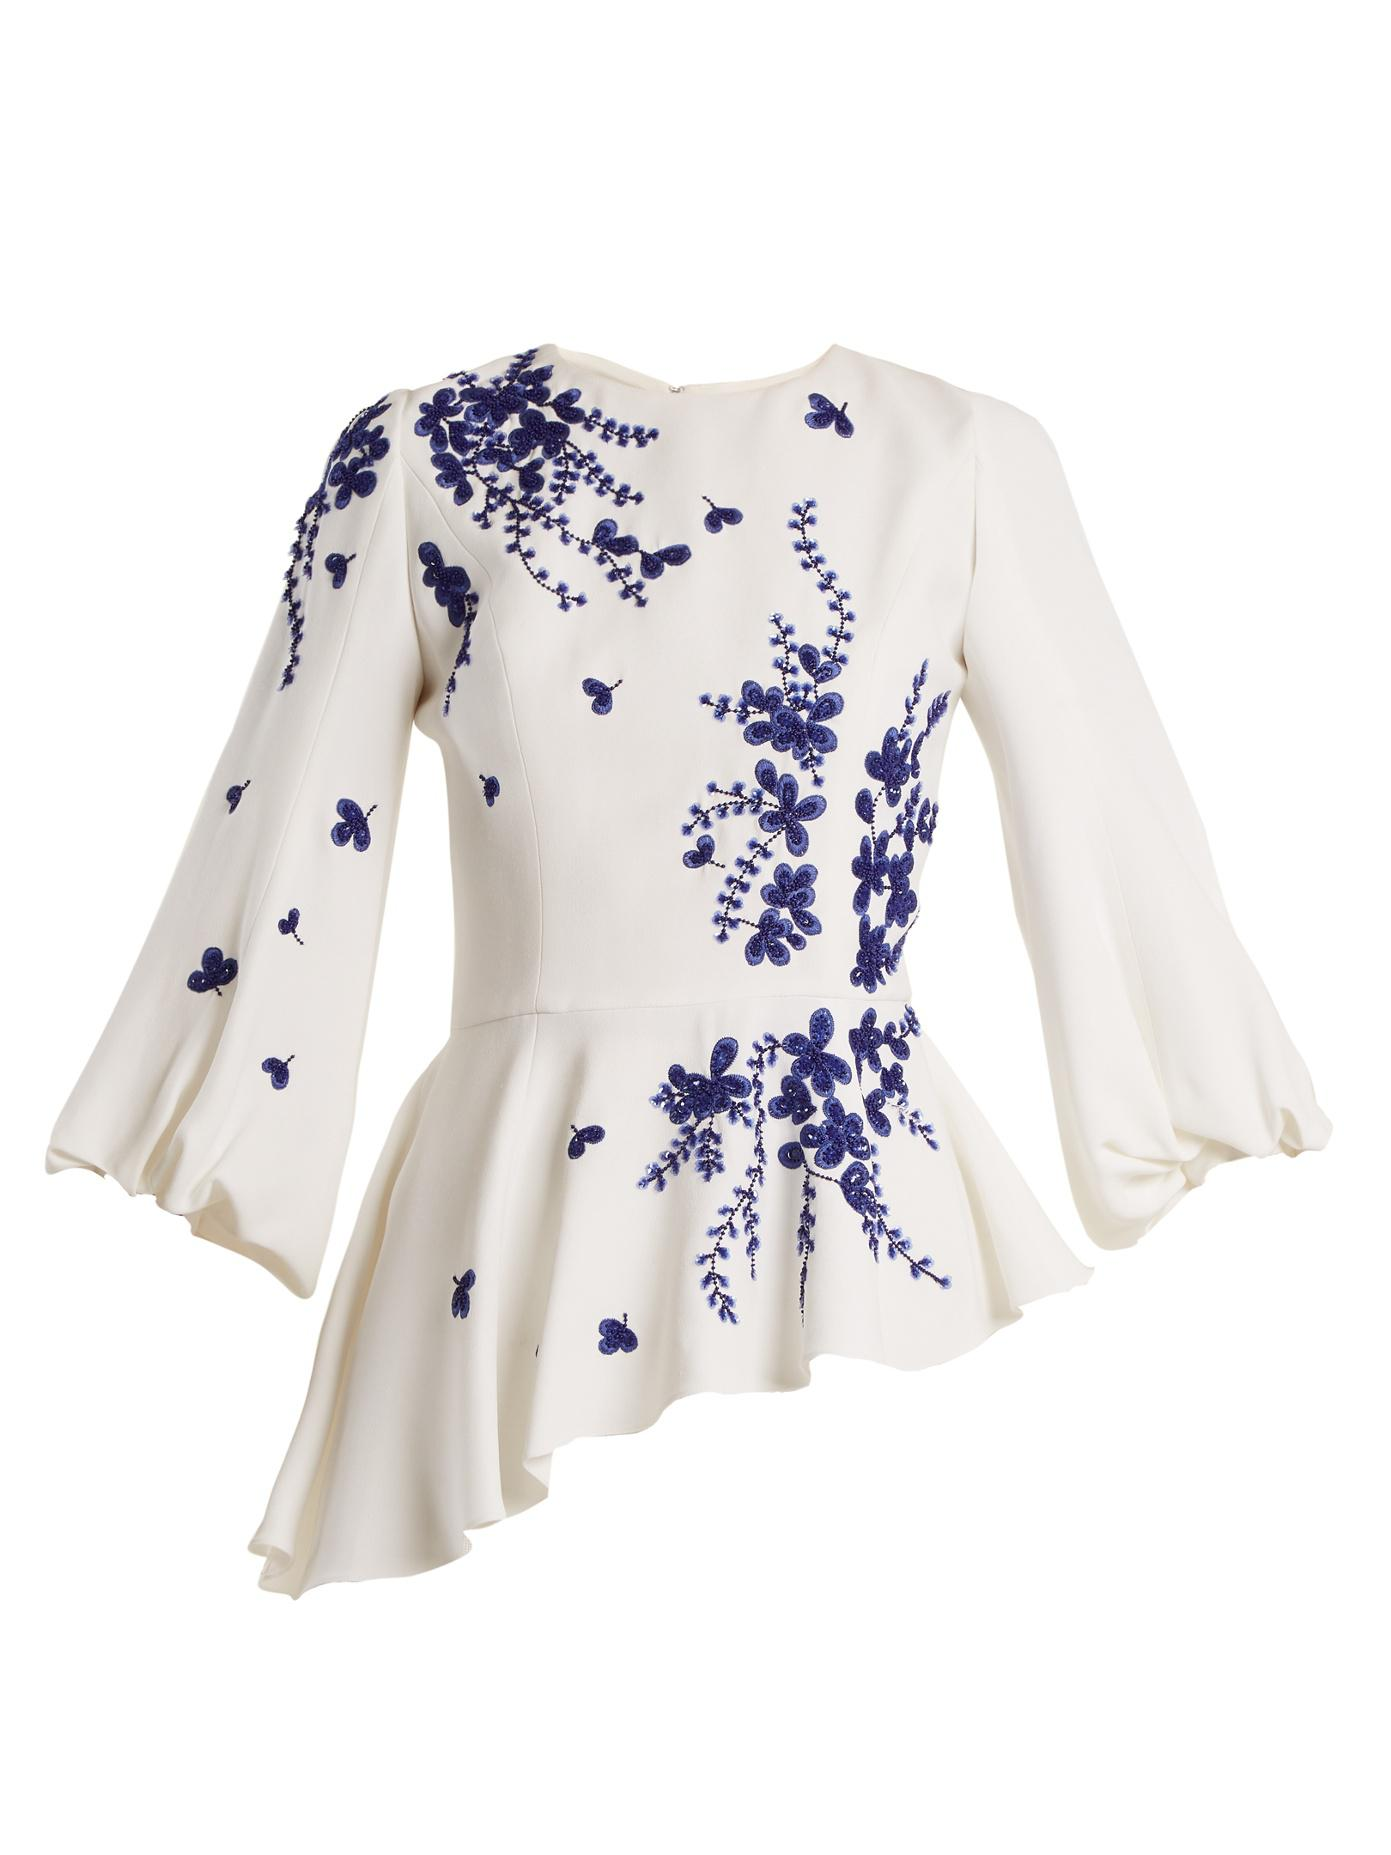 Buy Cheap View Buy Cheap Lowest Price SHIRTS - Blouses Andrew Gn IDnCkM